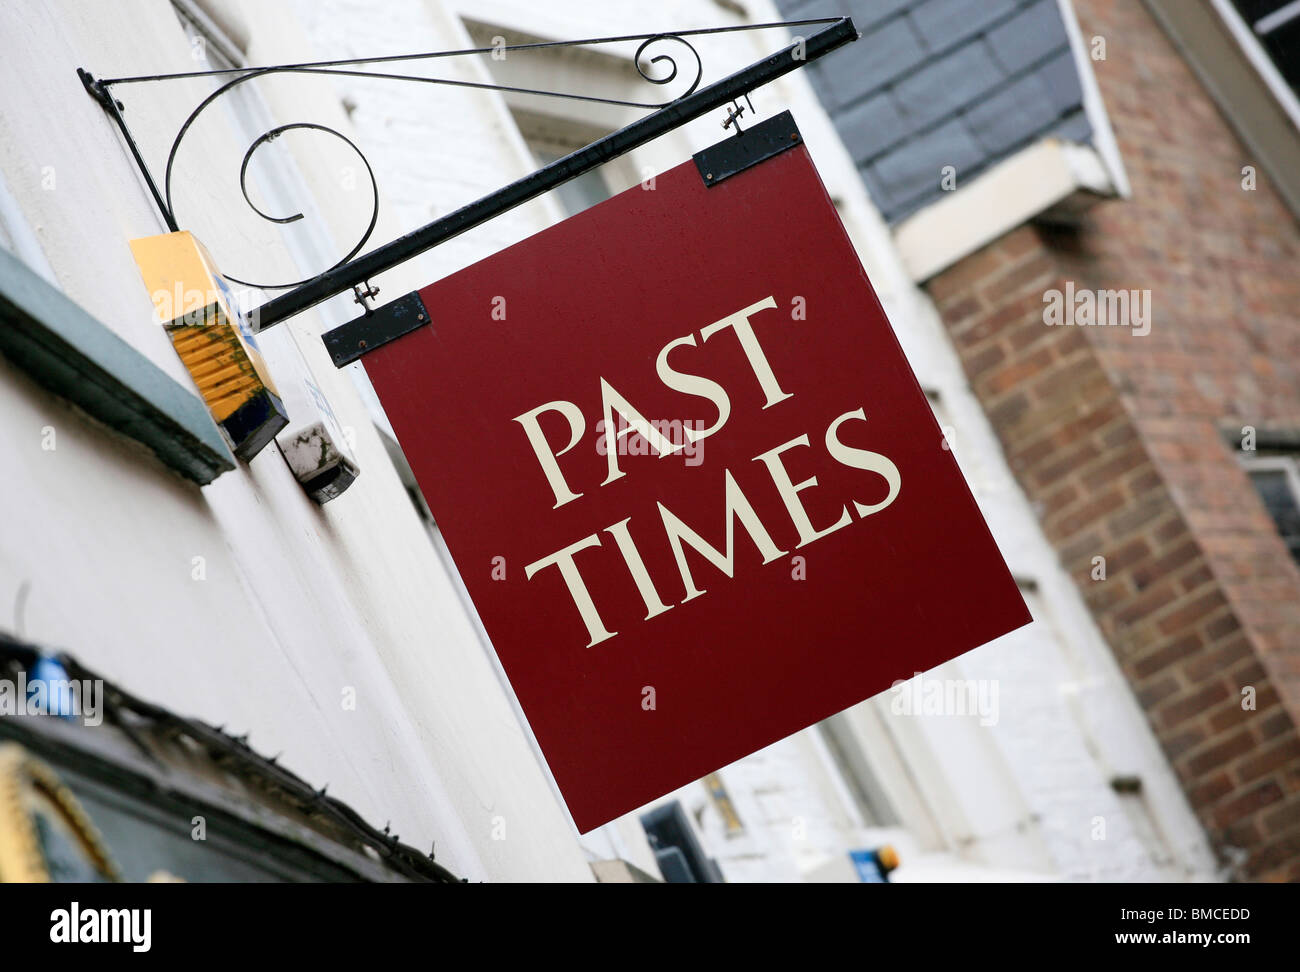 Past Times - Stock Image